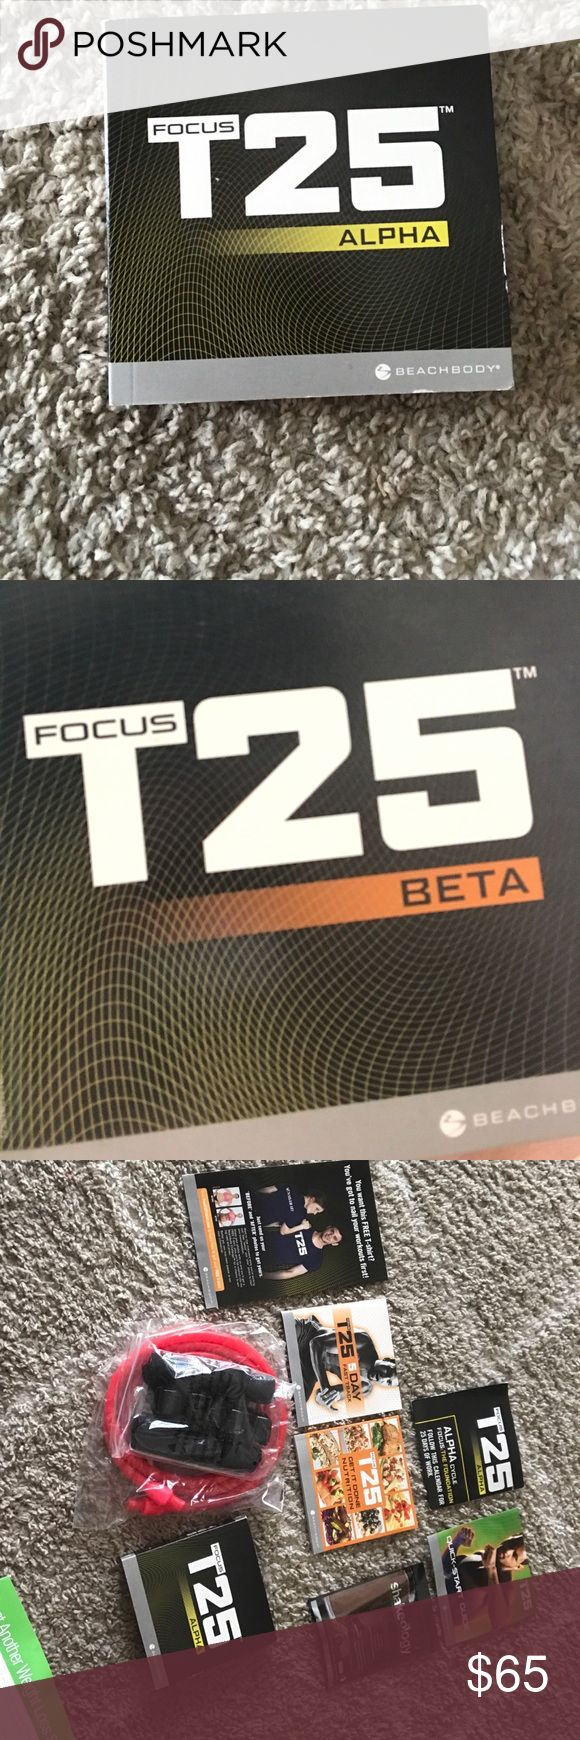 Beachbody T25 alpha/beta Shaun T beachbody t25 workout. You get the alpha/beta disc (all work) Ive only used a few times and didn't even get to use to beta (knee injury) T25 5 day fast track, T25 nutrition guide, calendar for workouts, a shakeology sample (chocolate) t25 quick start guide and the resistance bands! beachbody Other